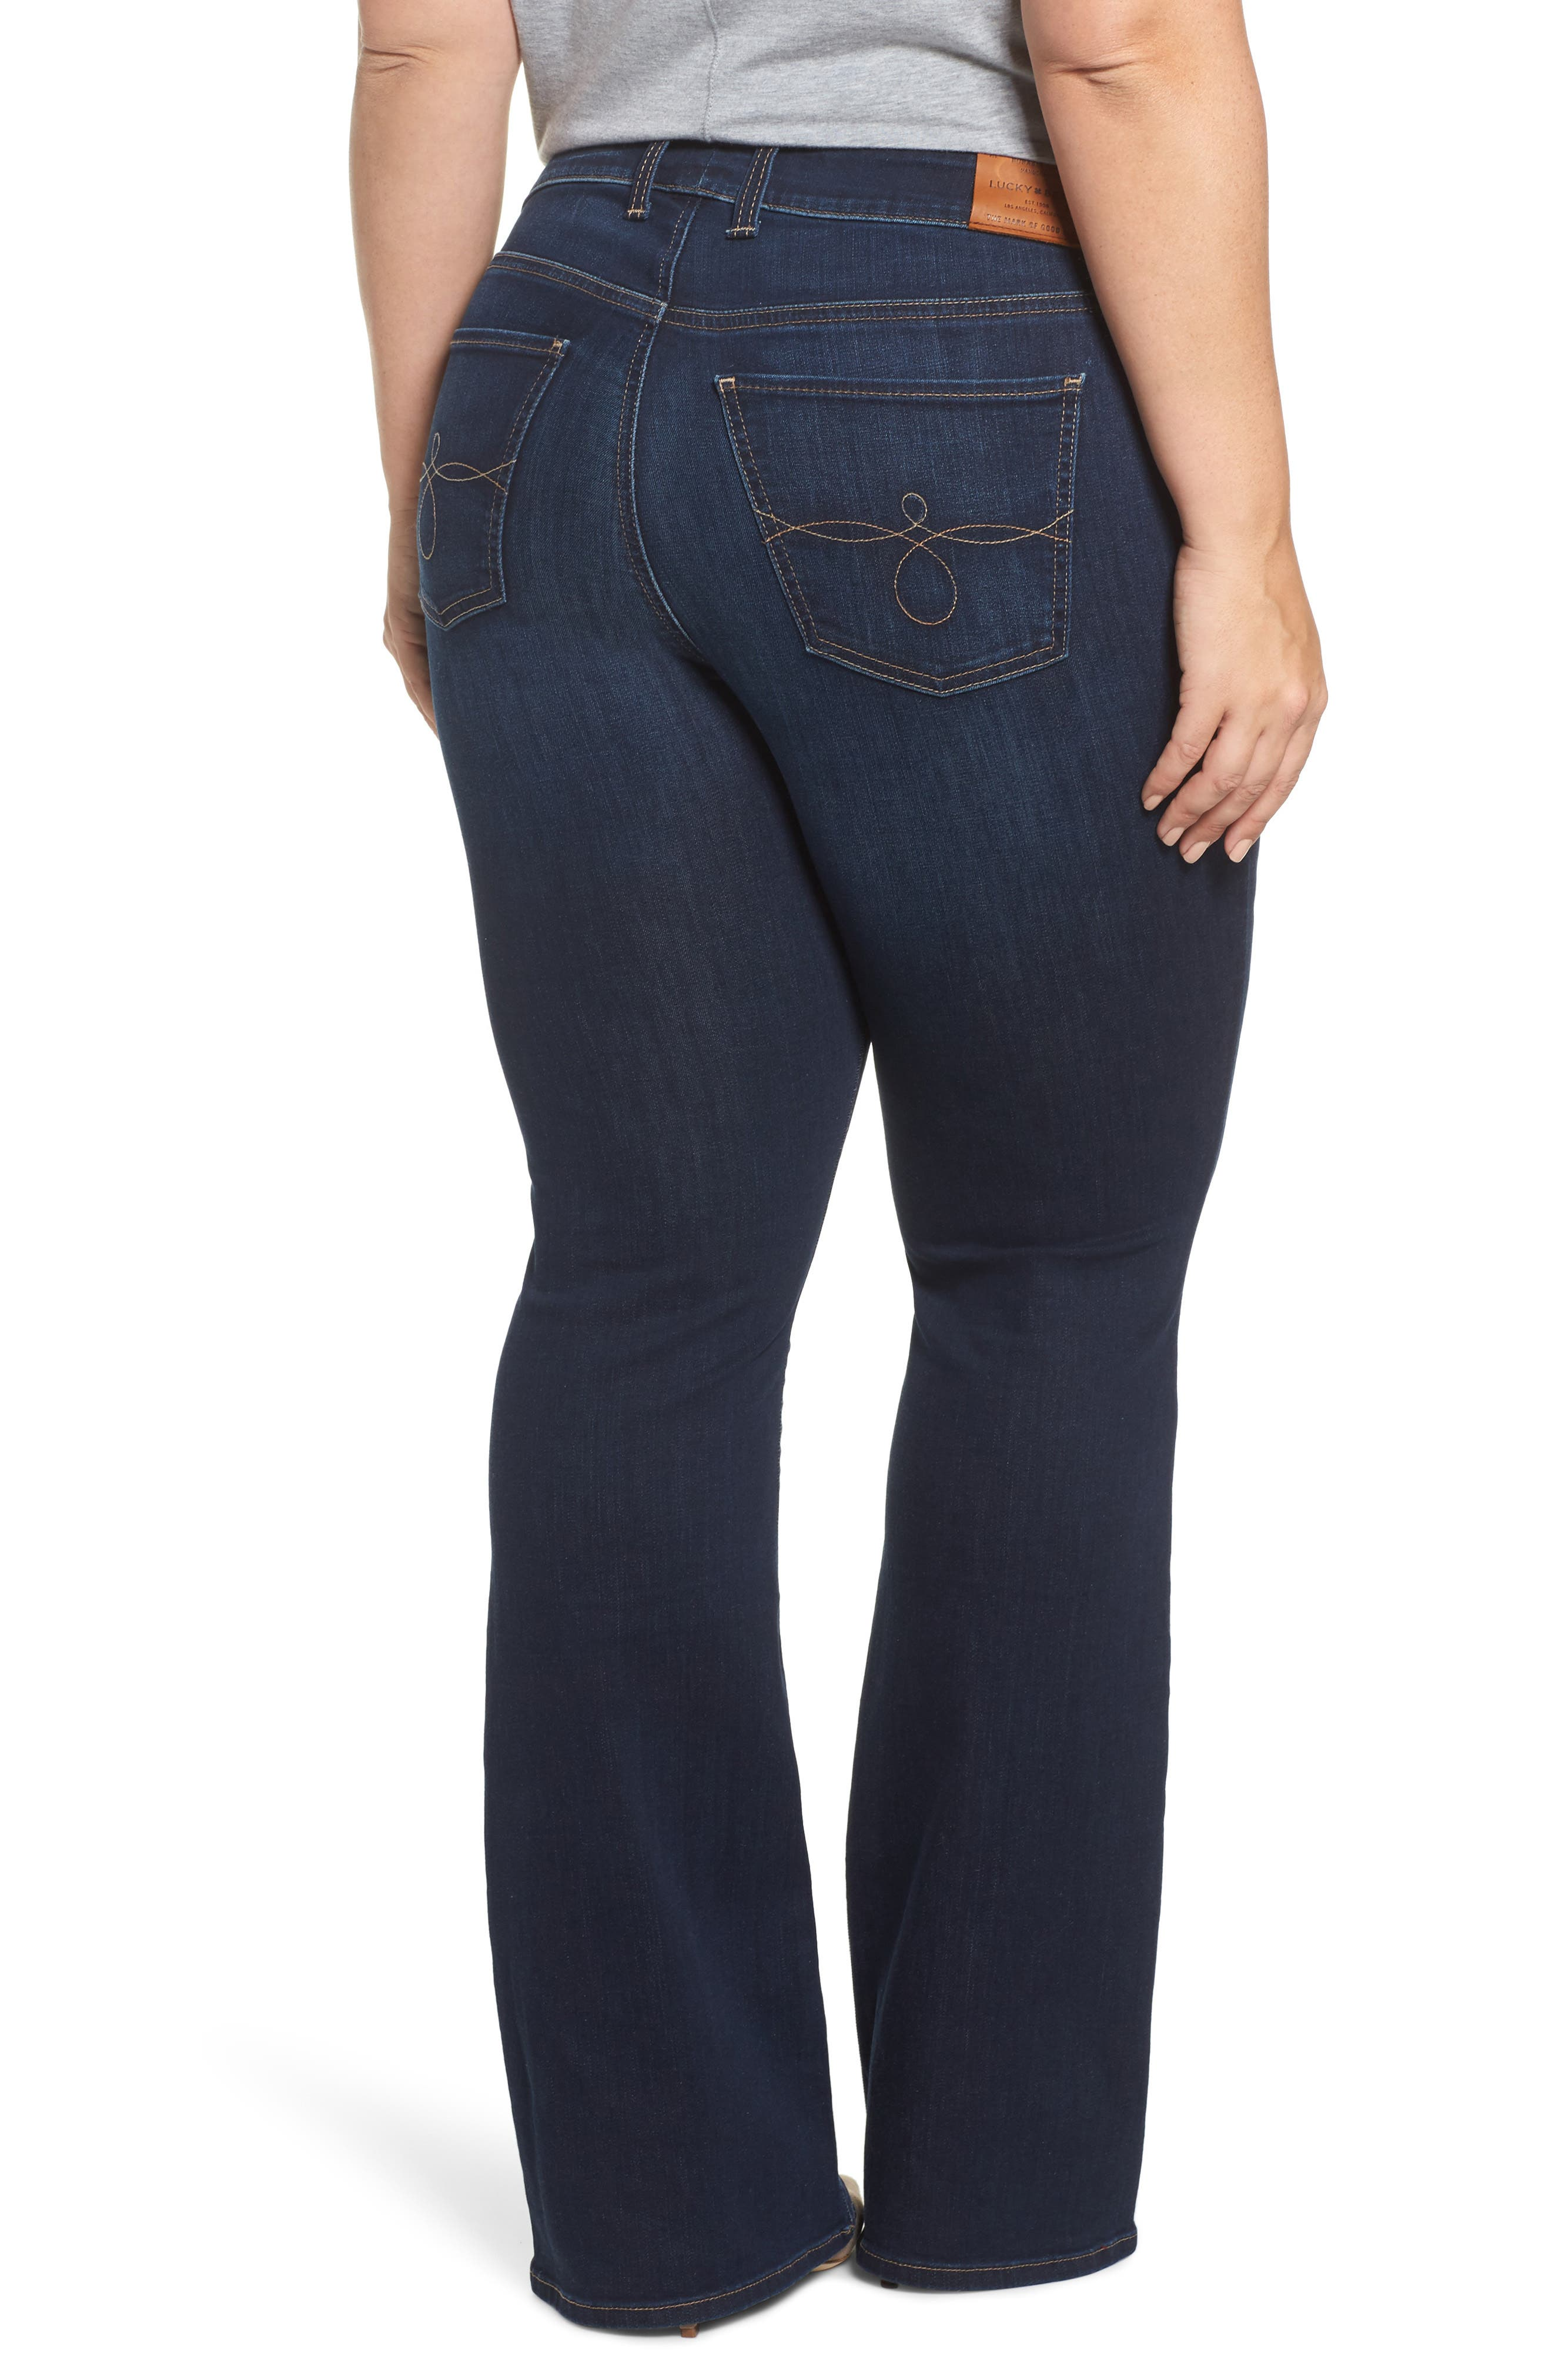 Ginger Bootcut Jeans,                             Alternate thumbnail 2, color,                             Twilight Blue